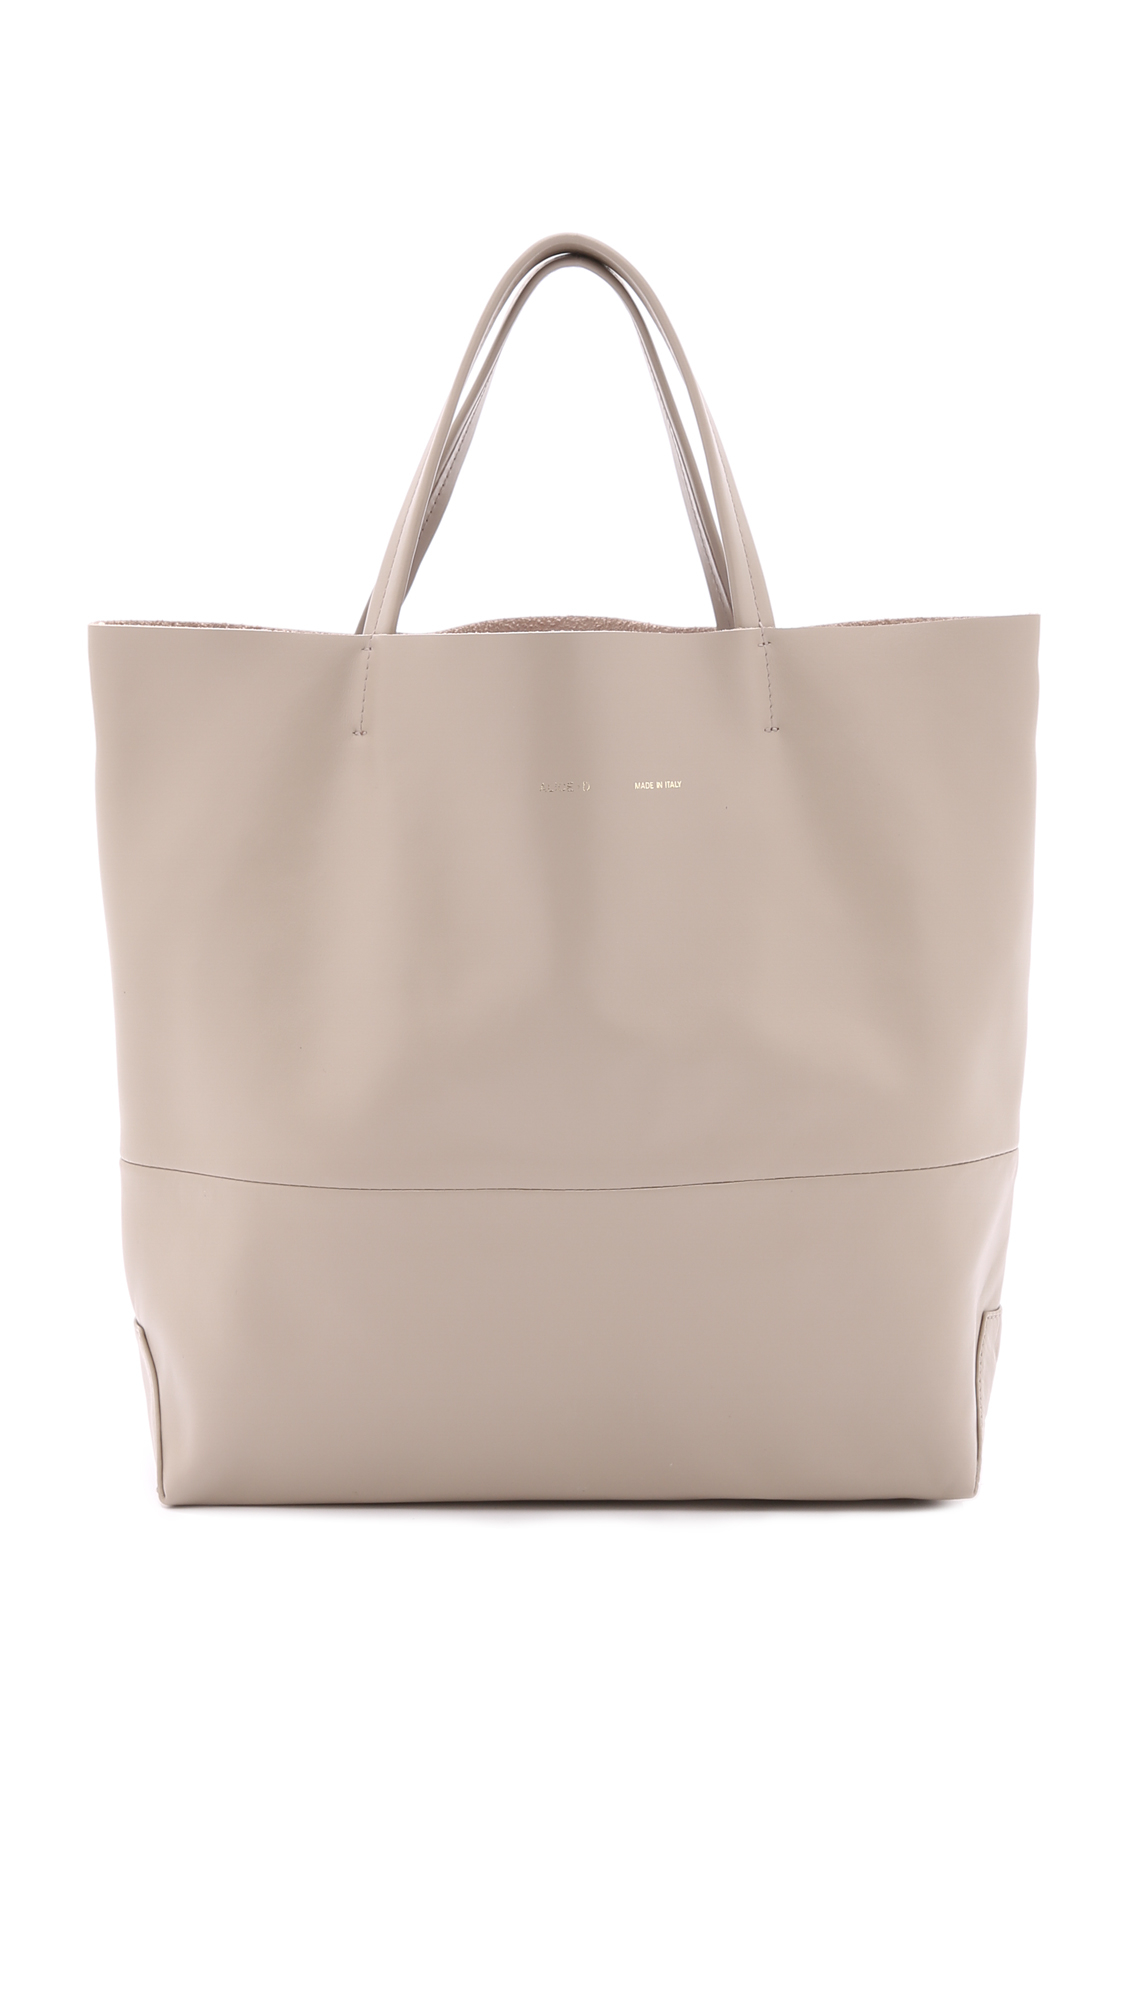 Alice D Medium Bag Taupe In Brown Lyst